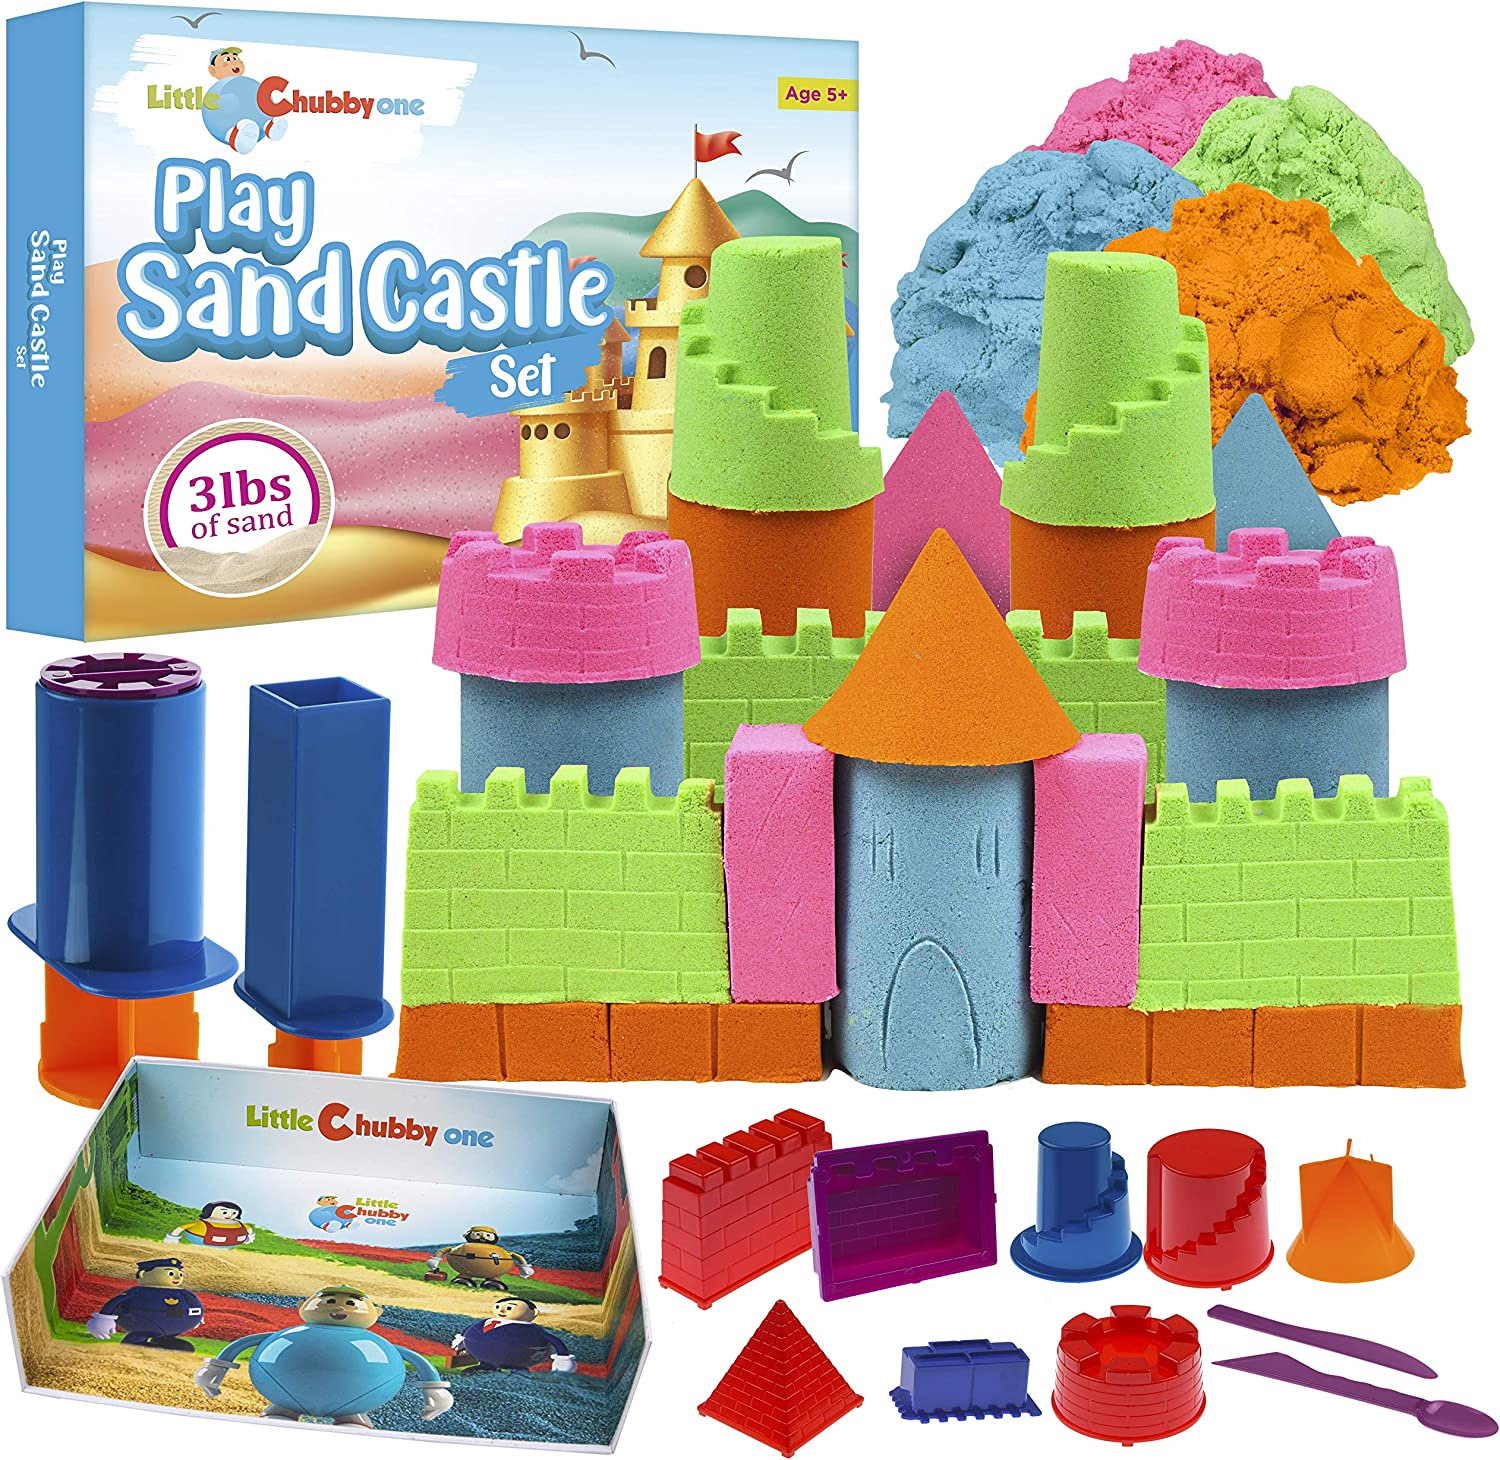 LITTLE CHUBBY ONE Kids Play Sand Castle Lbs M - Max 59% OFF Cheap mail order specialty store Set 3 Toy